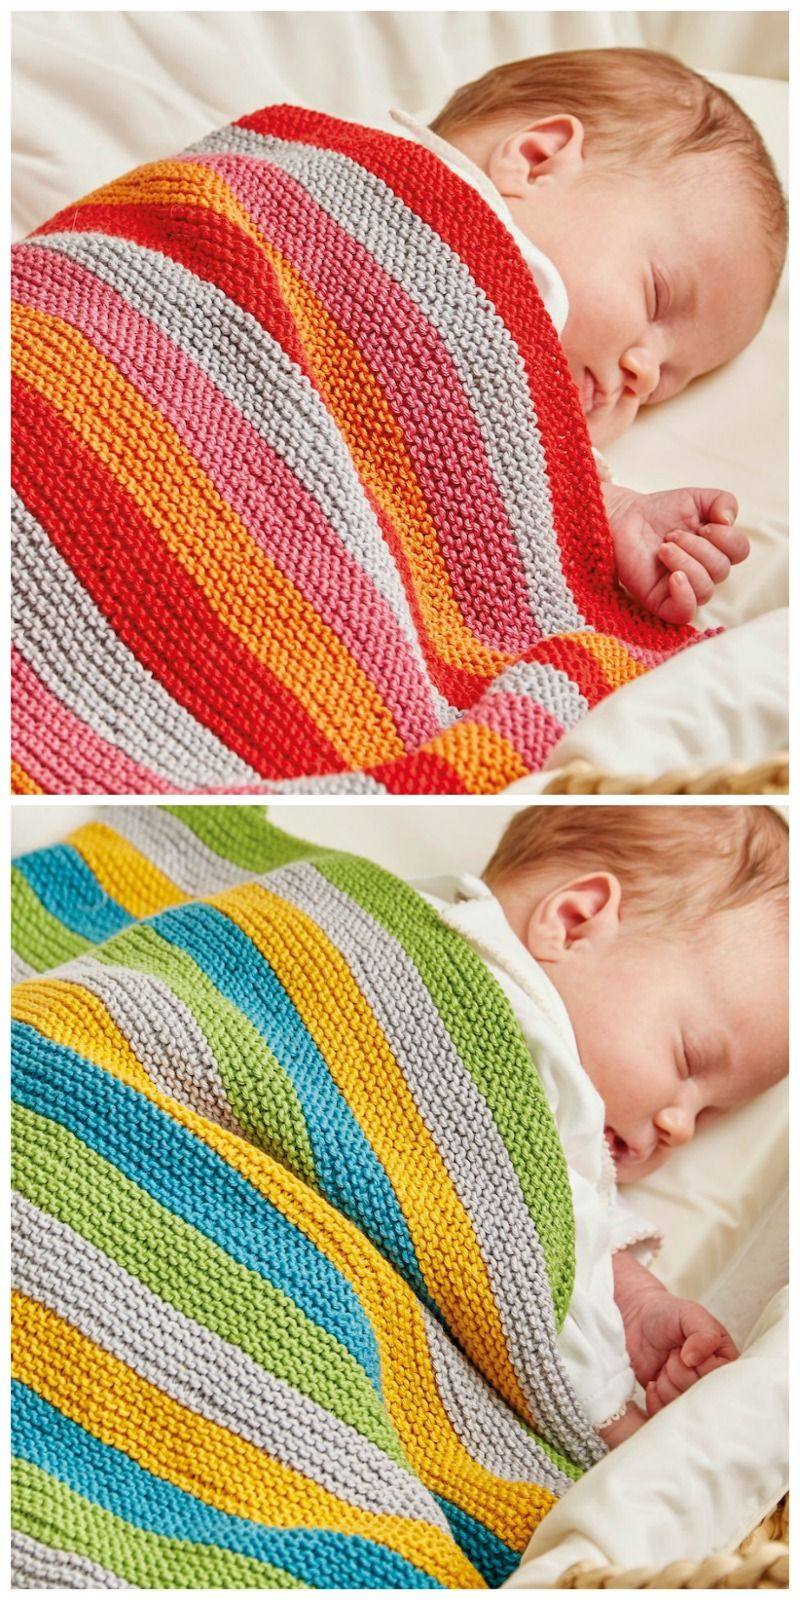 Free knitting pattern ollie and polly blankets by jem weston with free knitting pattern ollie and polly blankets by jem weston from the knitted nursery collection 14 cuddly toys and colourful accessories for babies bankloansurffo Choice Image